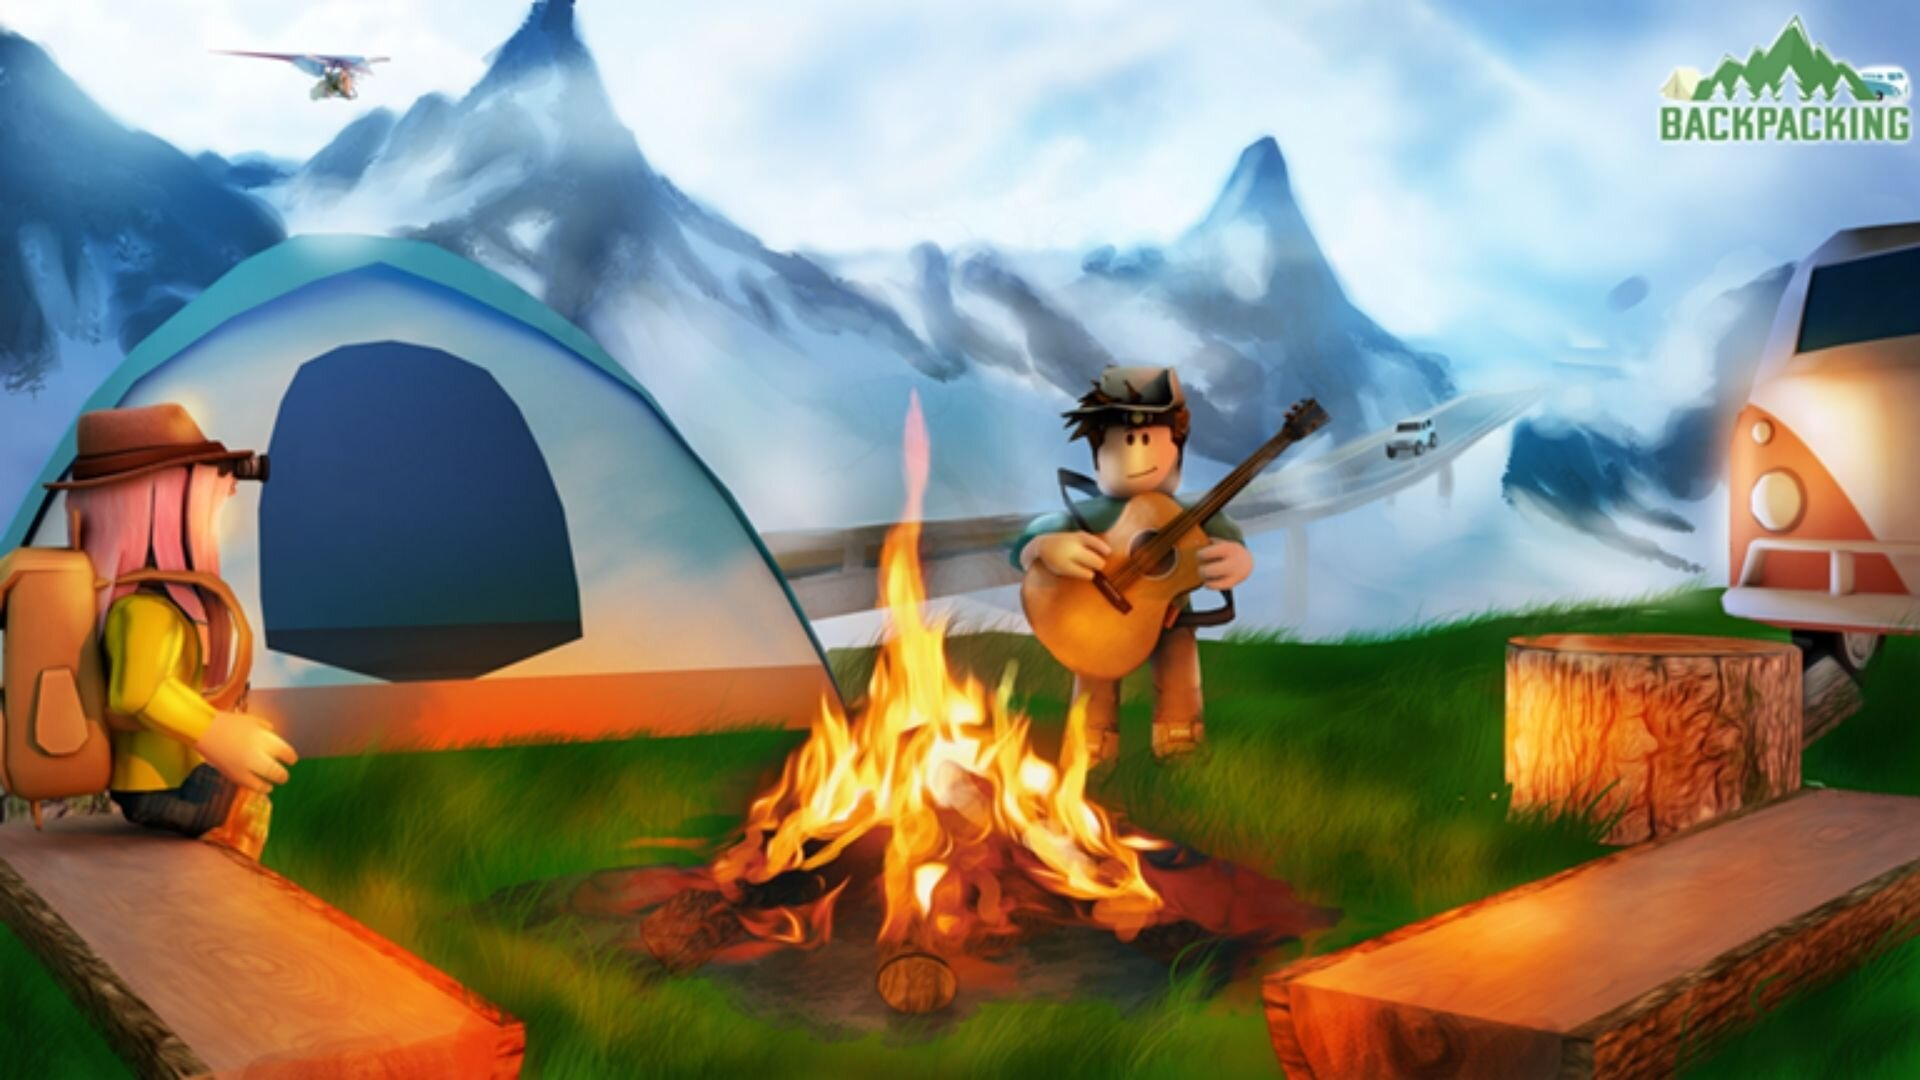 Roblox Backpacking Codes